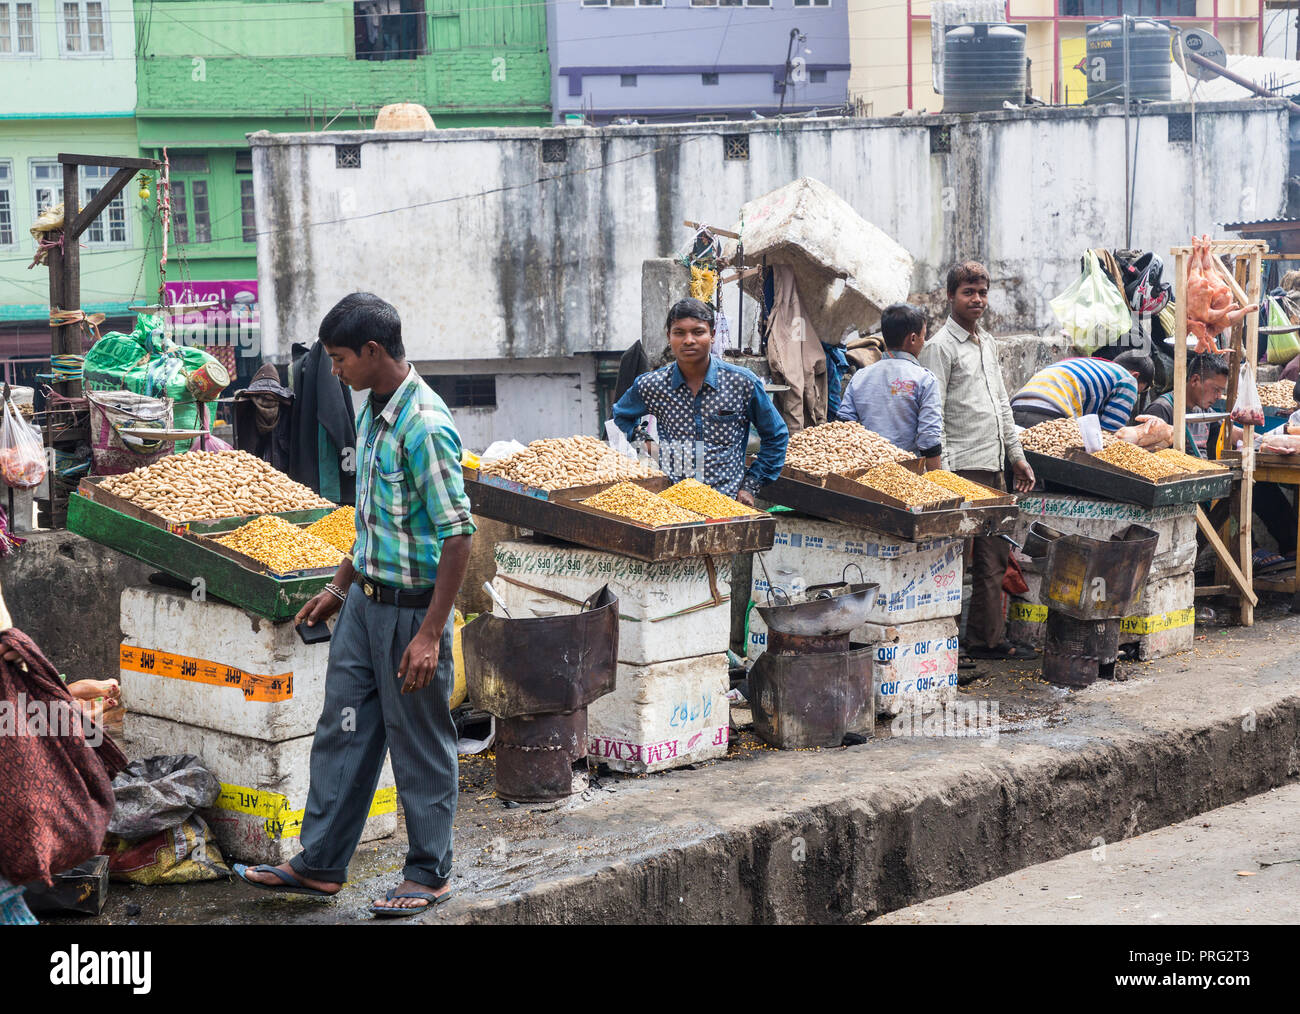 Cooked nuts on sale in street market, Shillong, Meghalaya, India - Stock Image